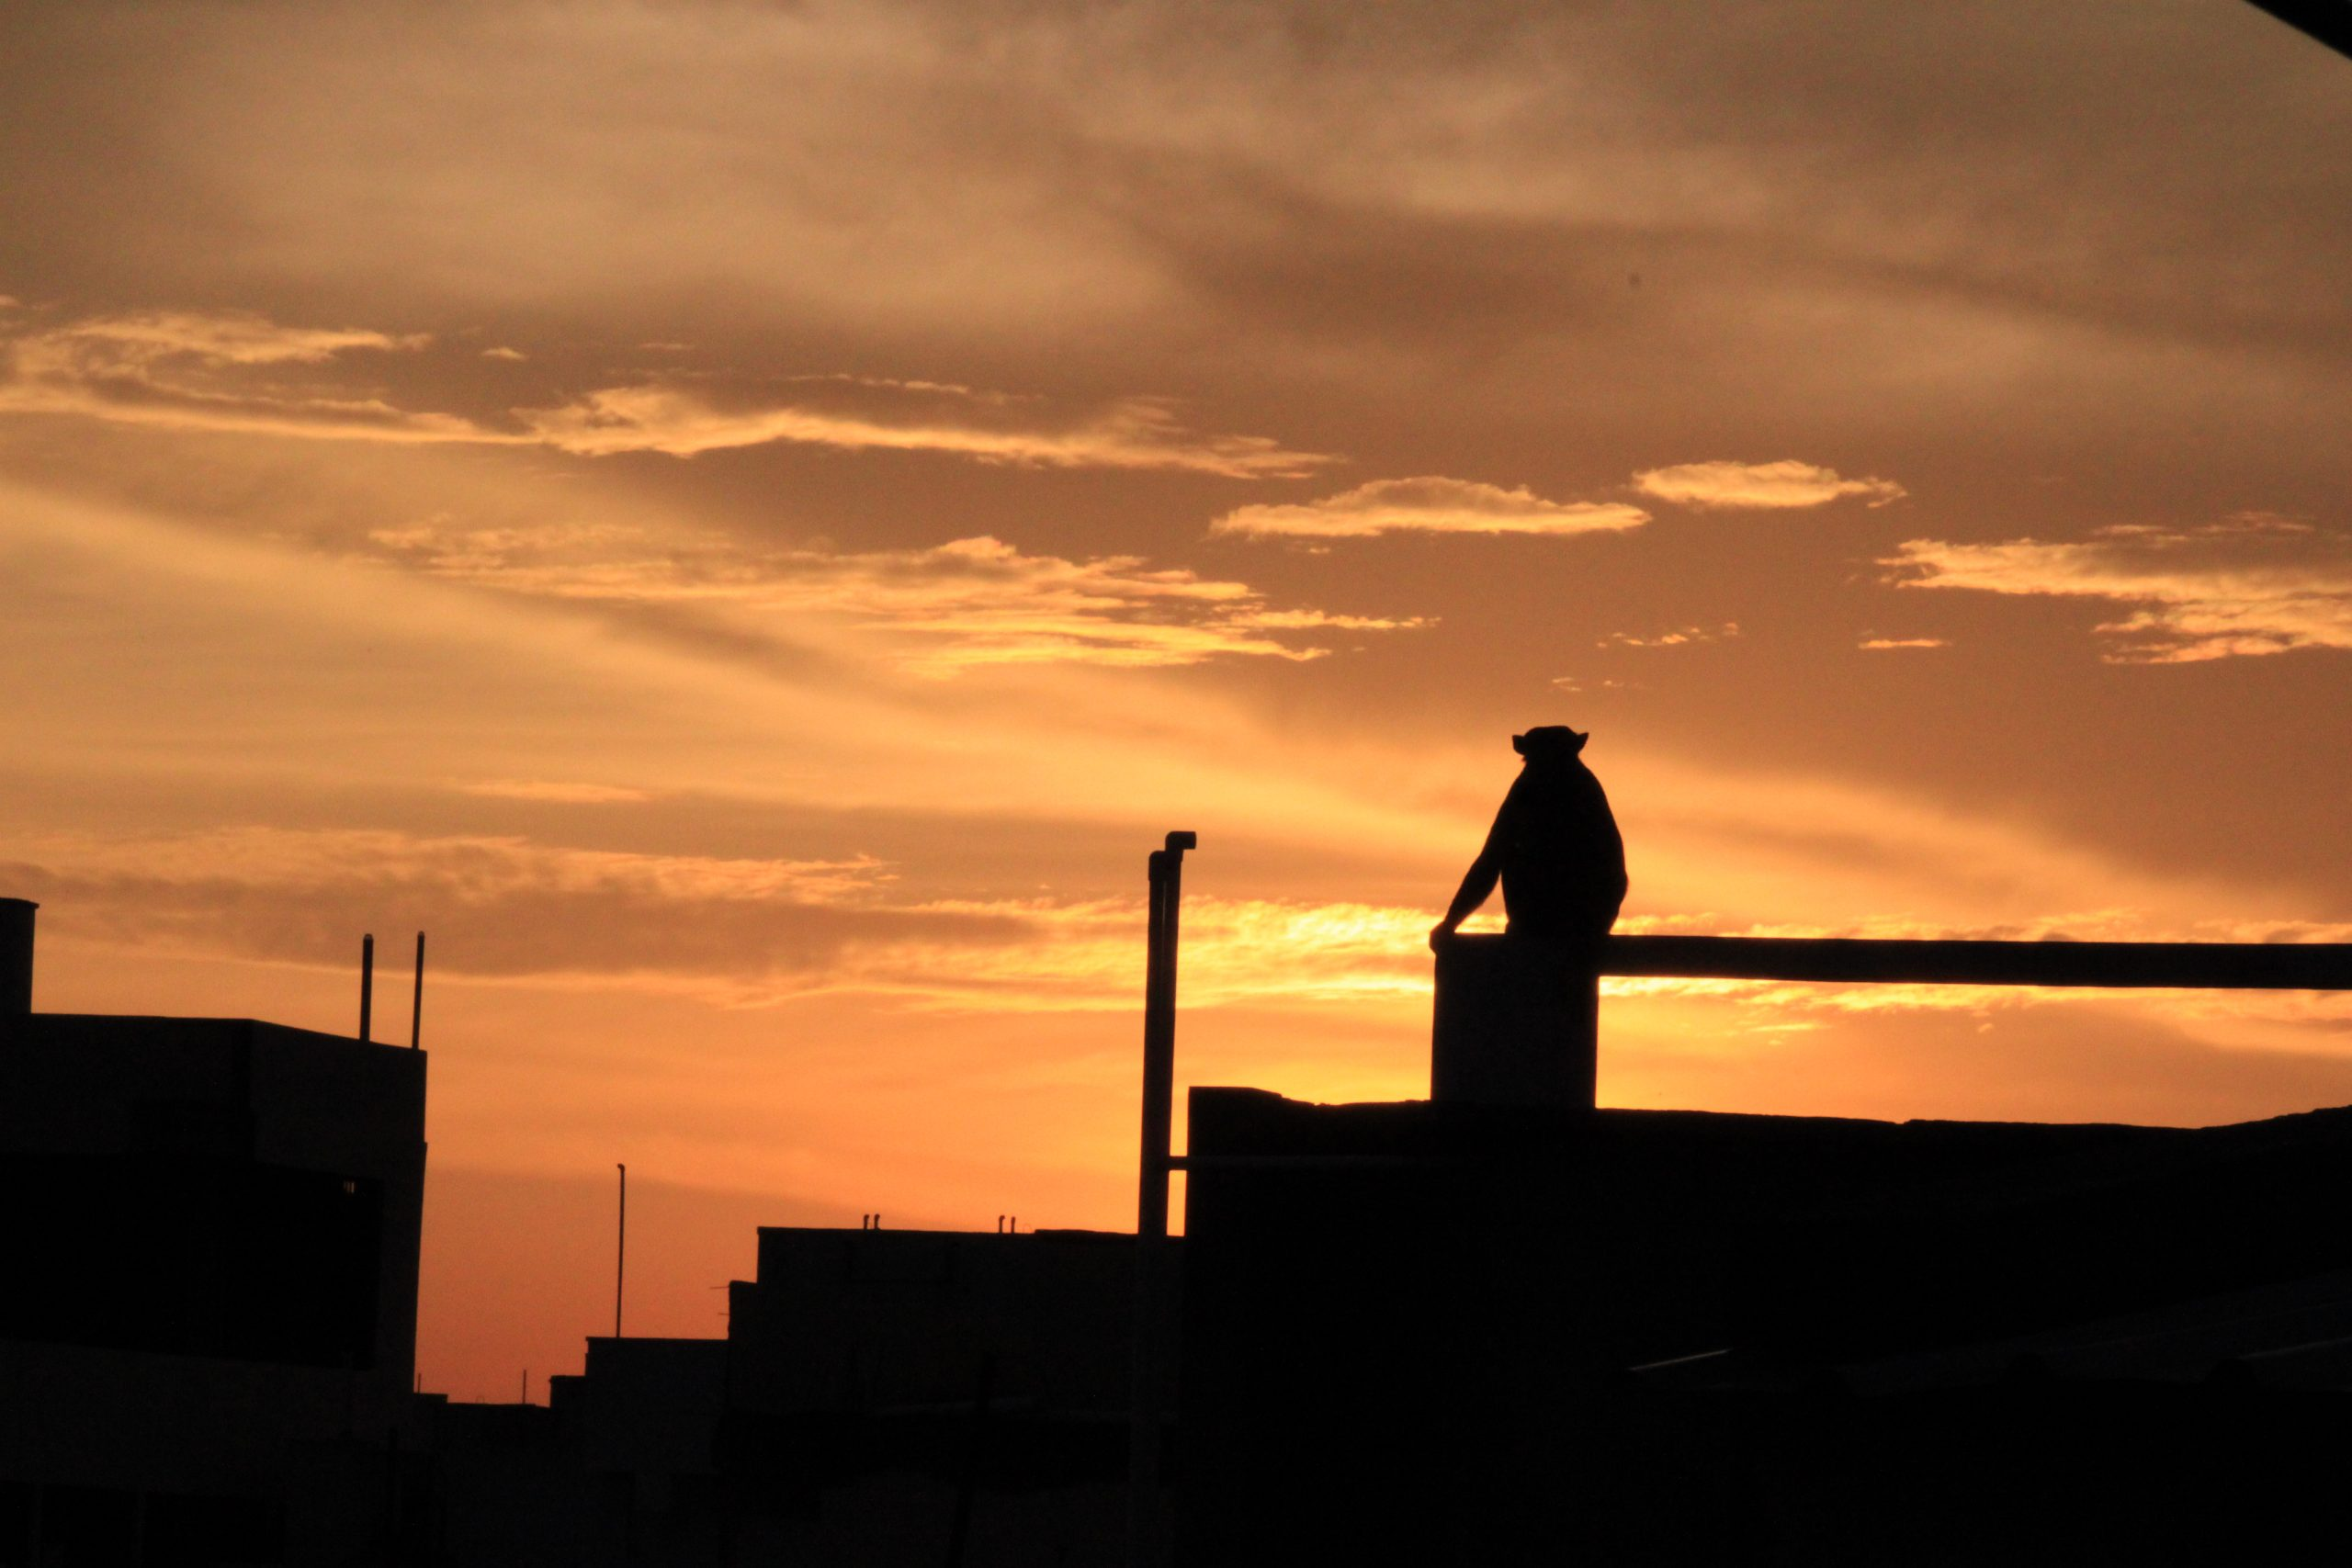 silhouette of monkey at sunset